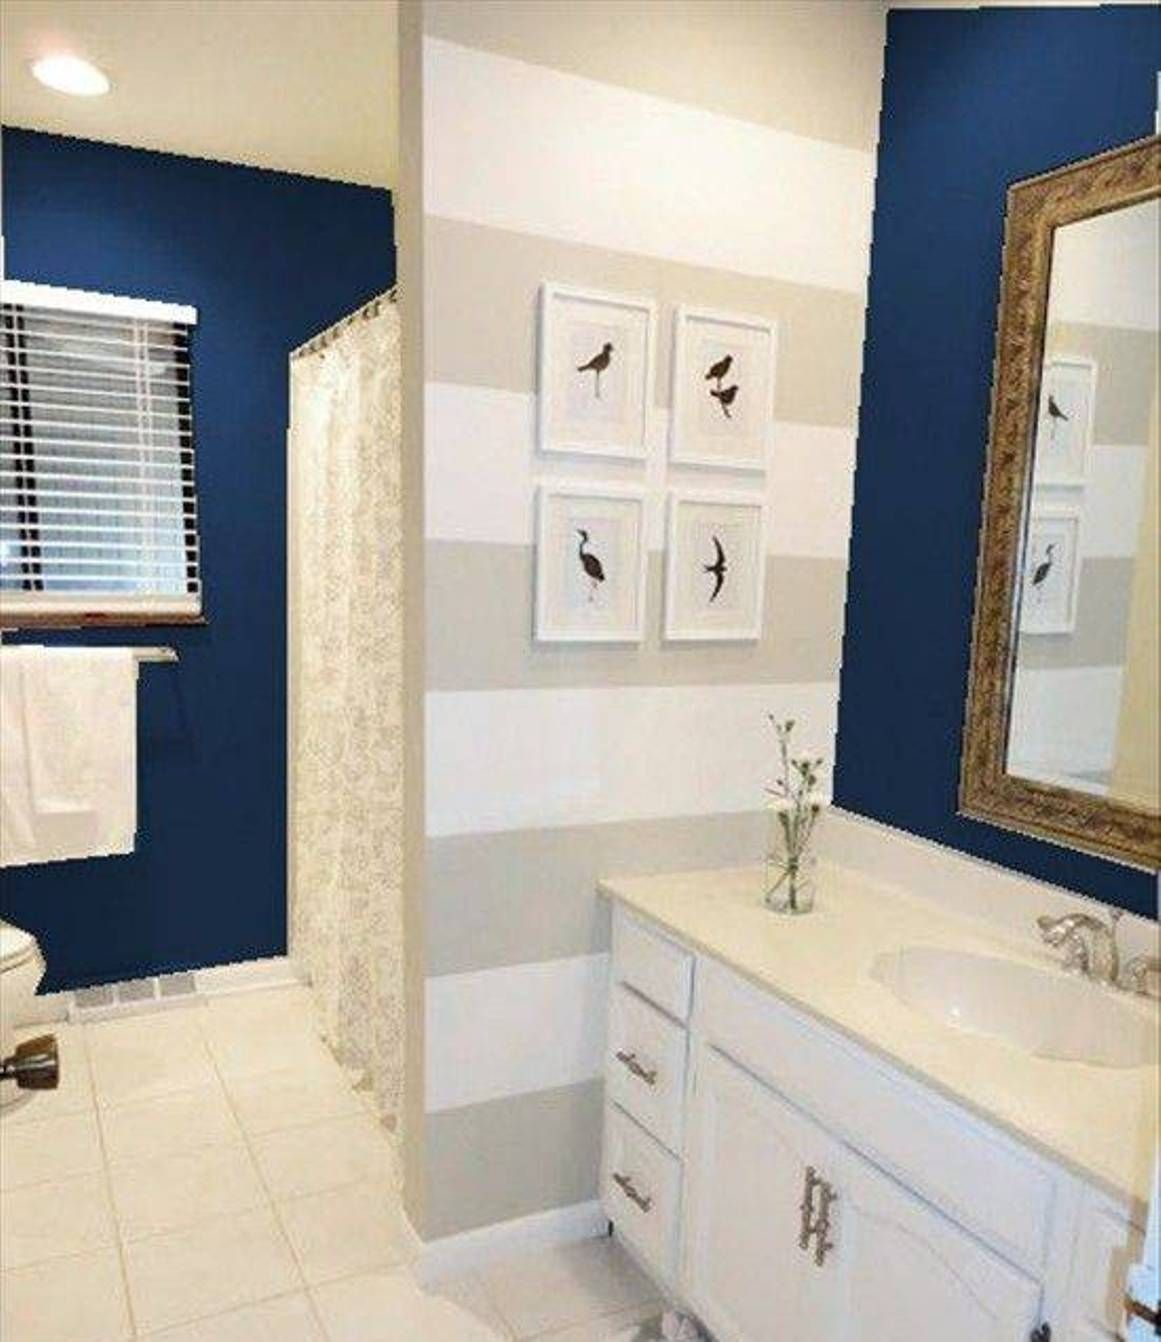 Nautical Theme Bathroom With Stripe Wall Accent And Navy Blue